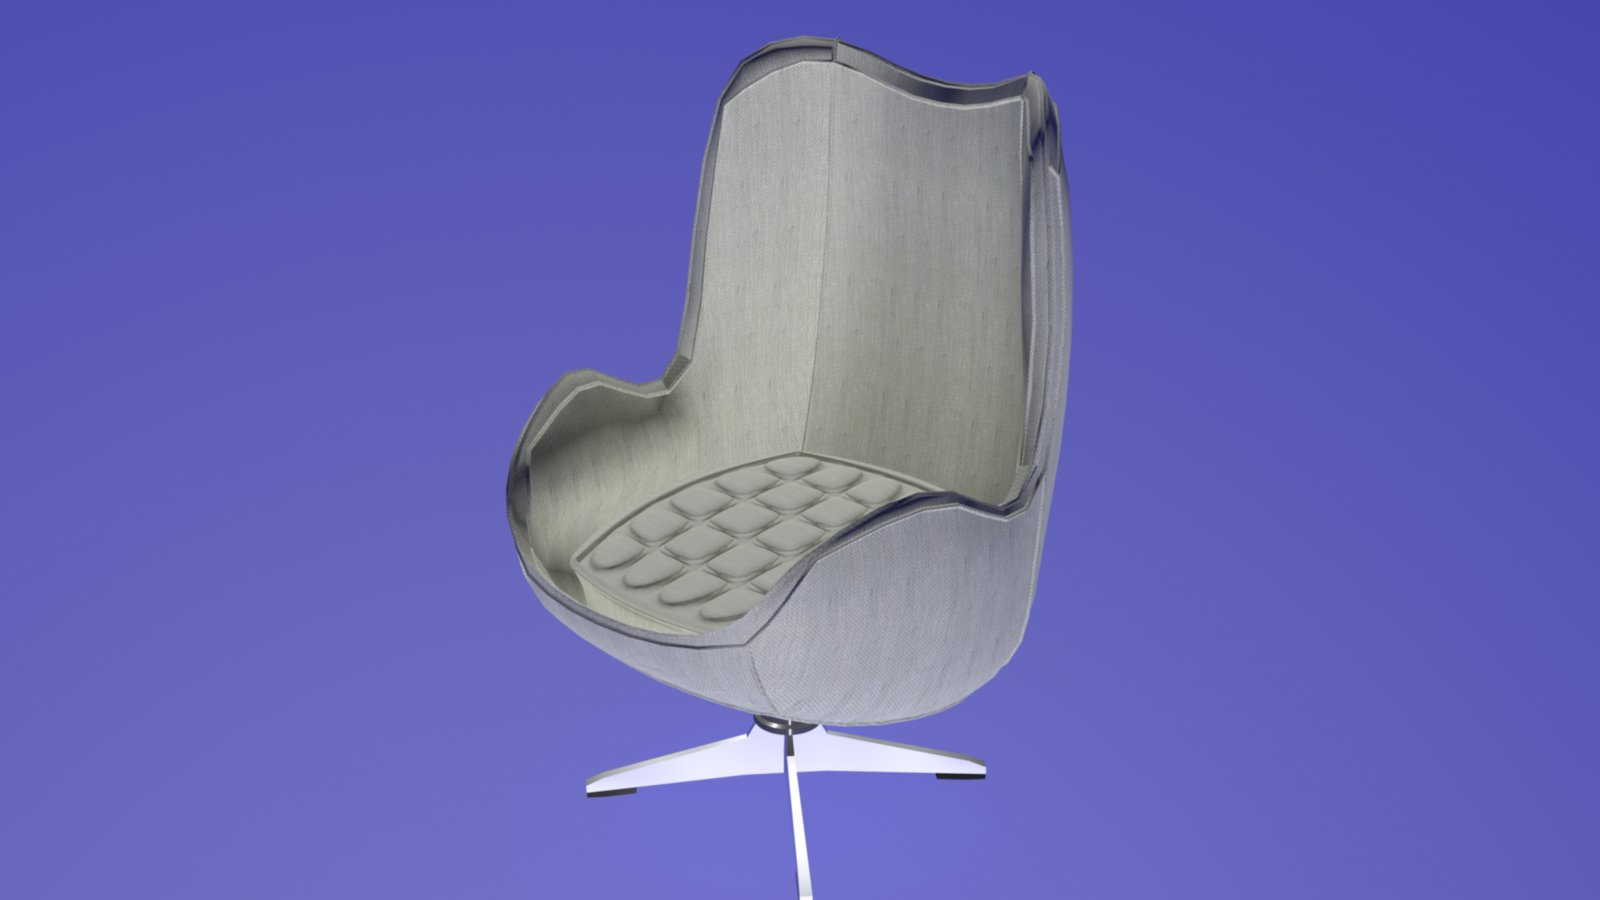 Egg chair white fabric render 8.jpg